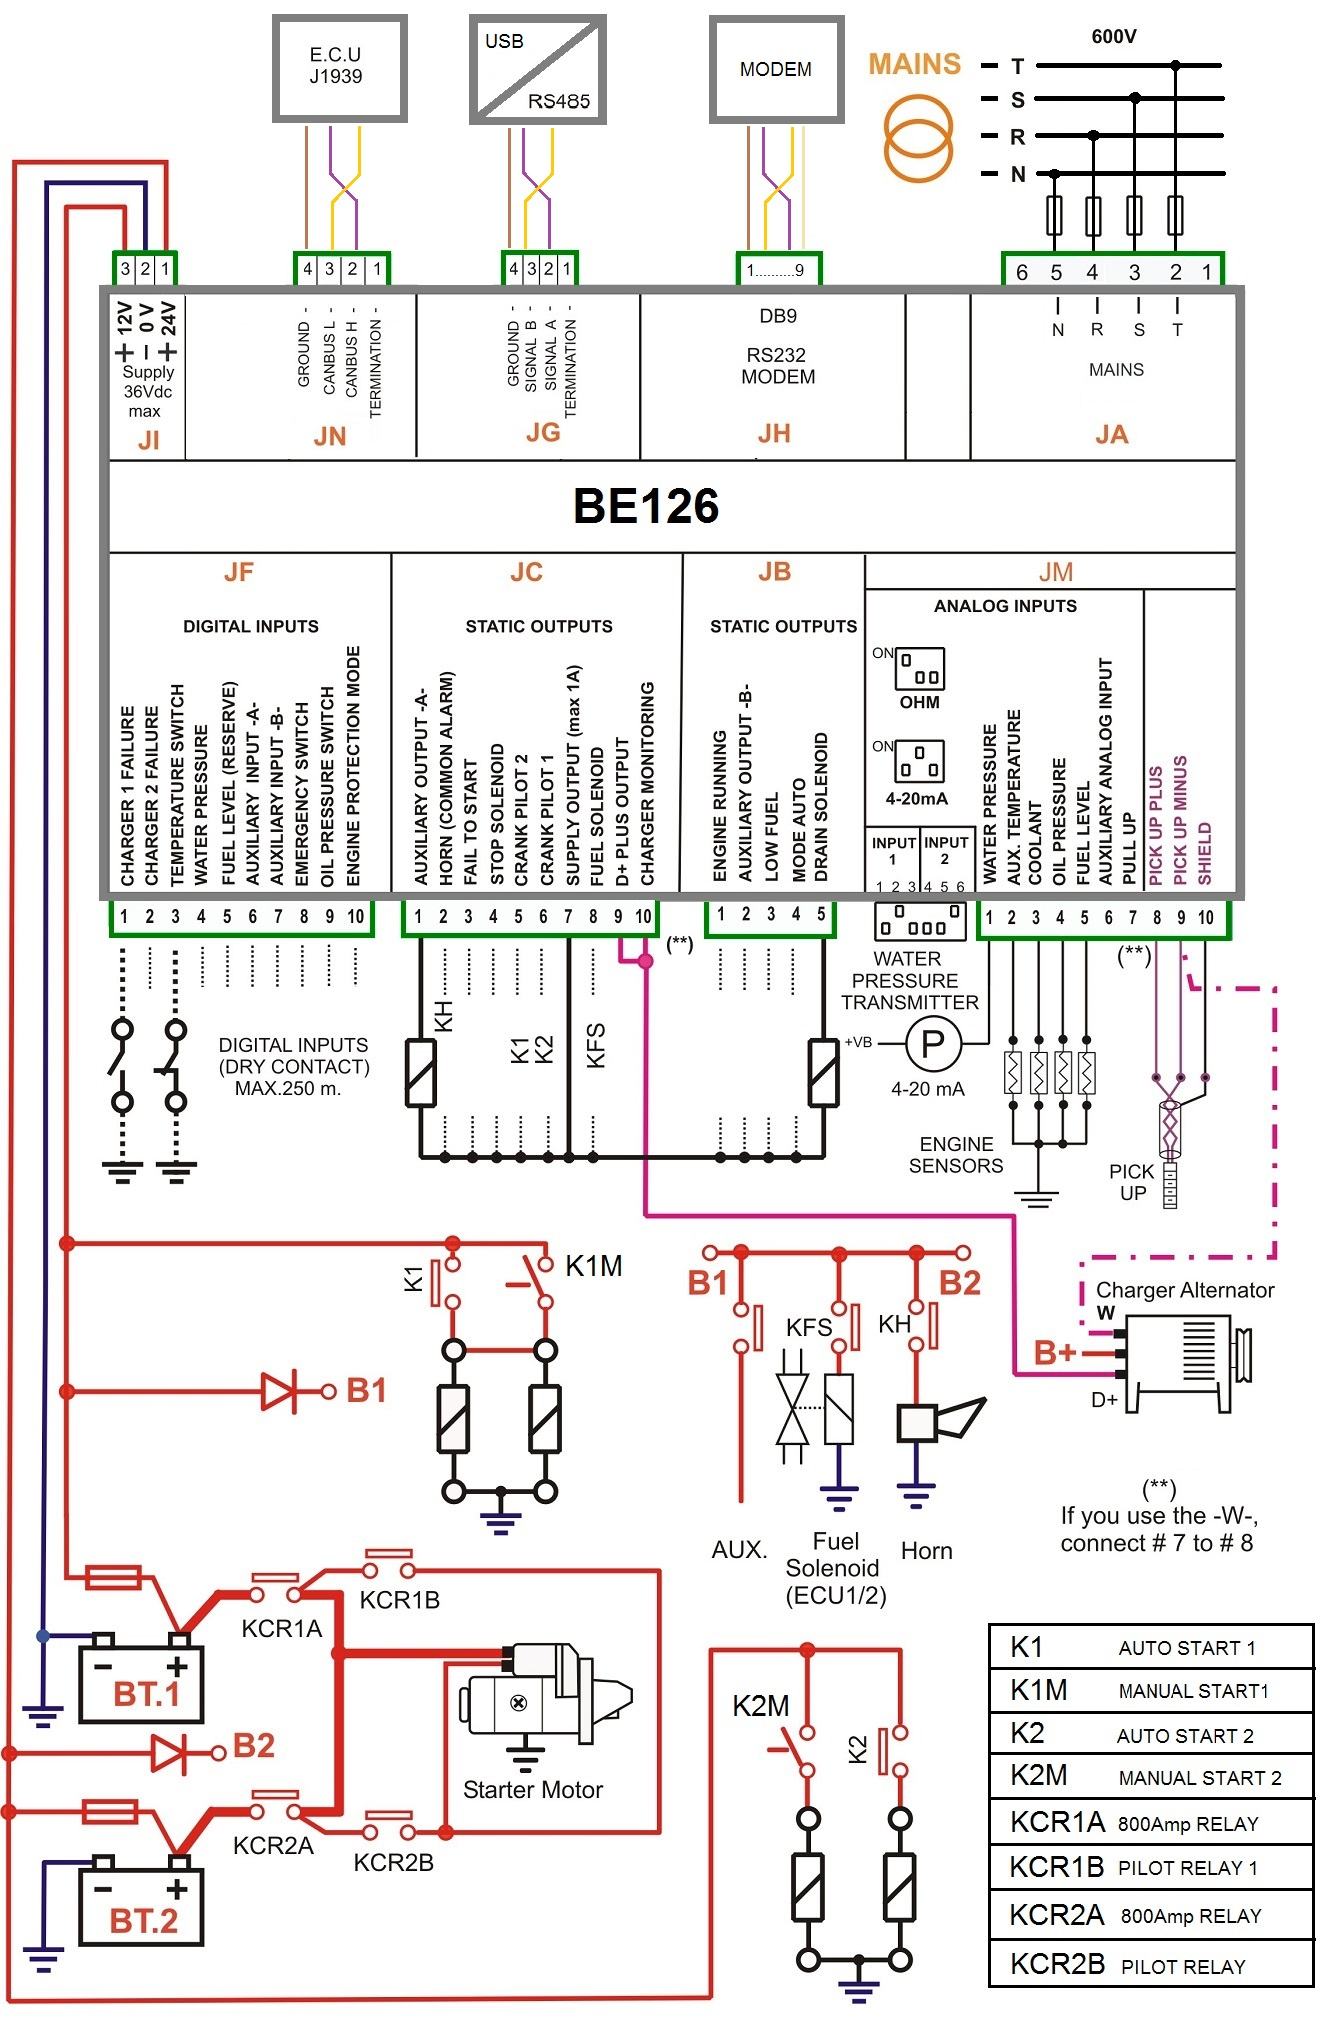 NFPA20 fire pump controller wiring diagram fire pump controller wiring diagram genset controller electrical control wiring diagrams at soozxer.org